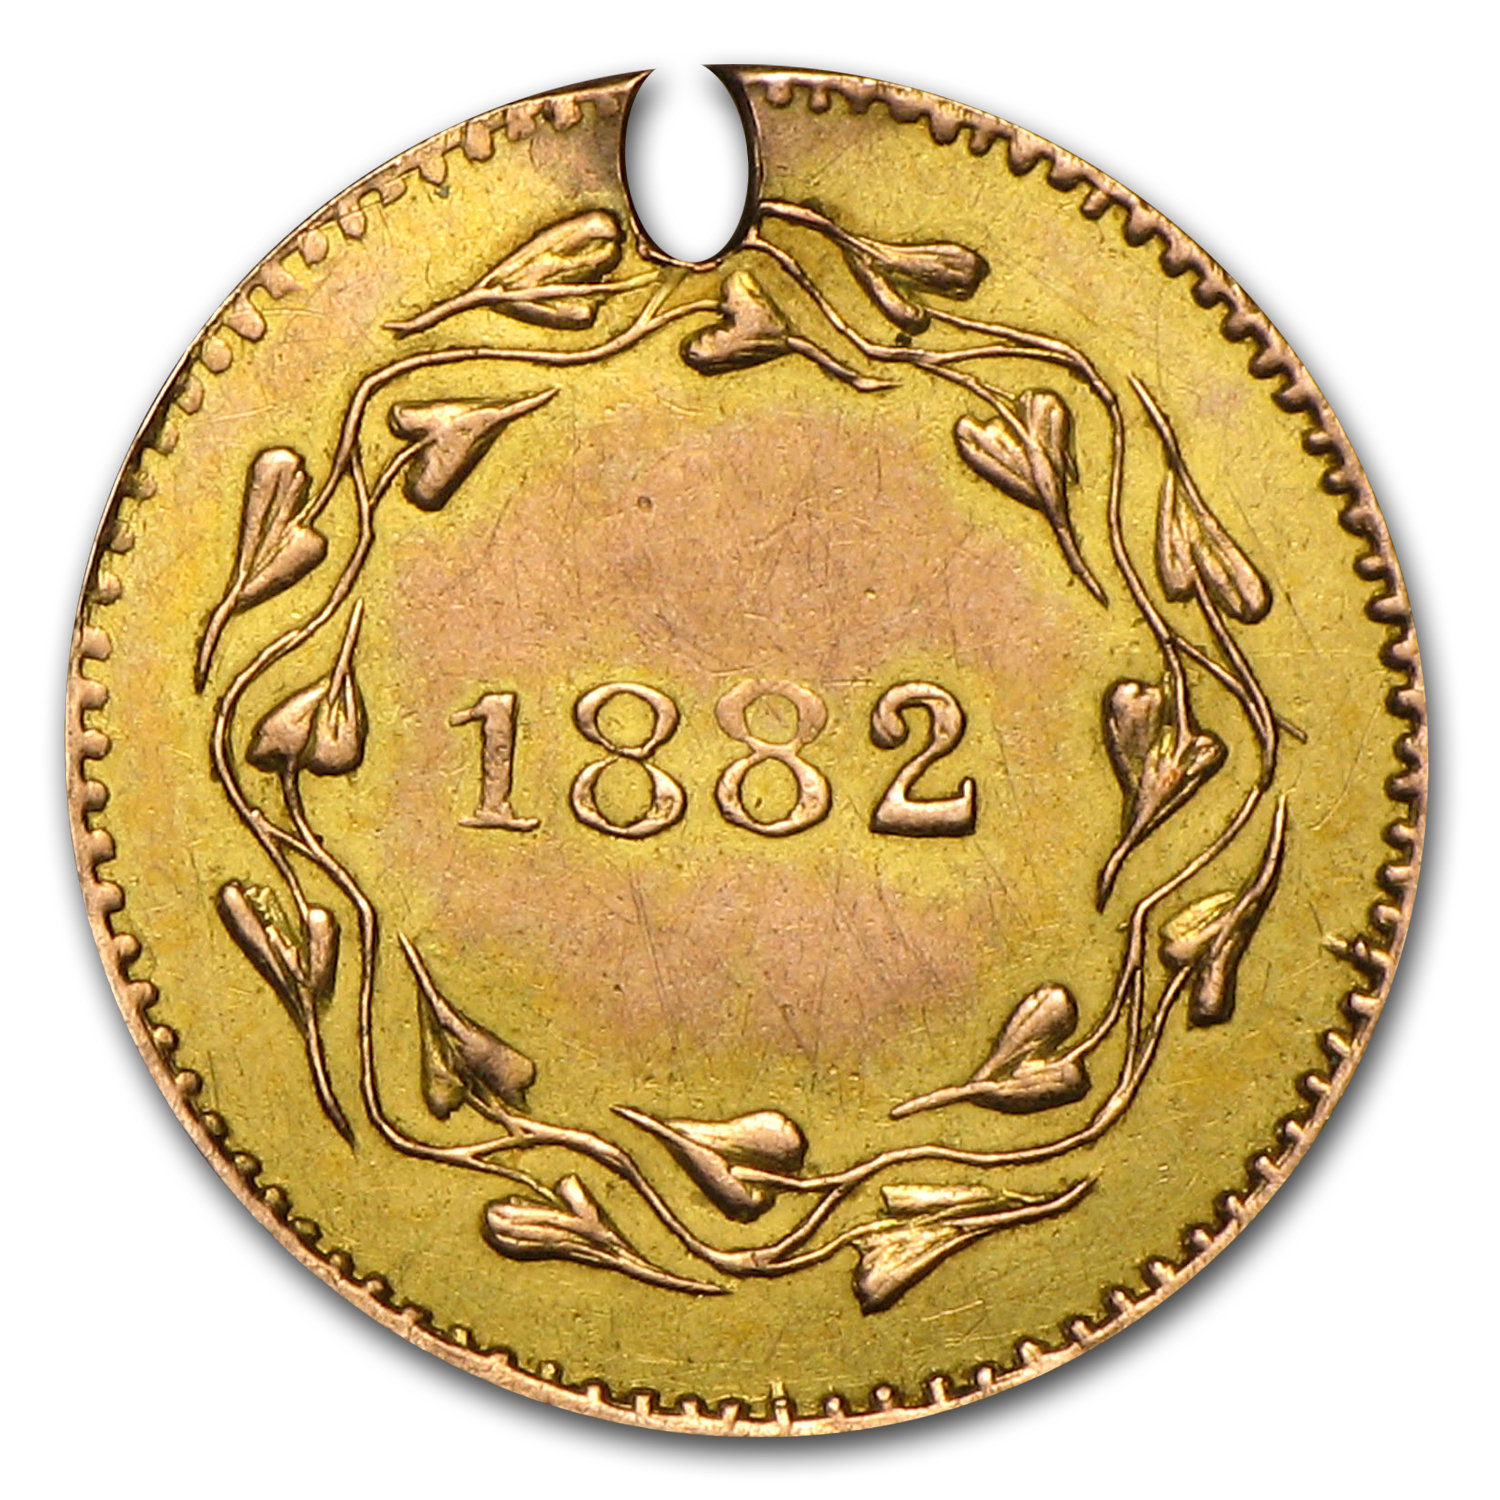 1882 Heron Round Wreath Gold Token AU Details - Holed